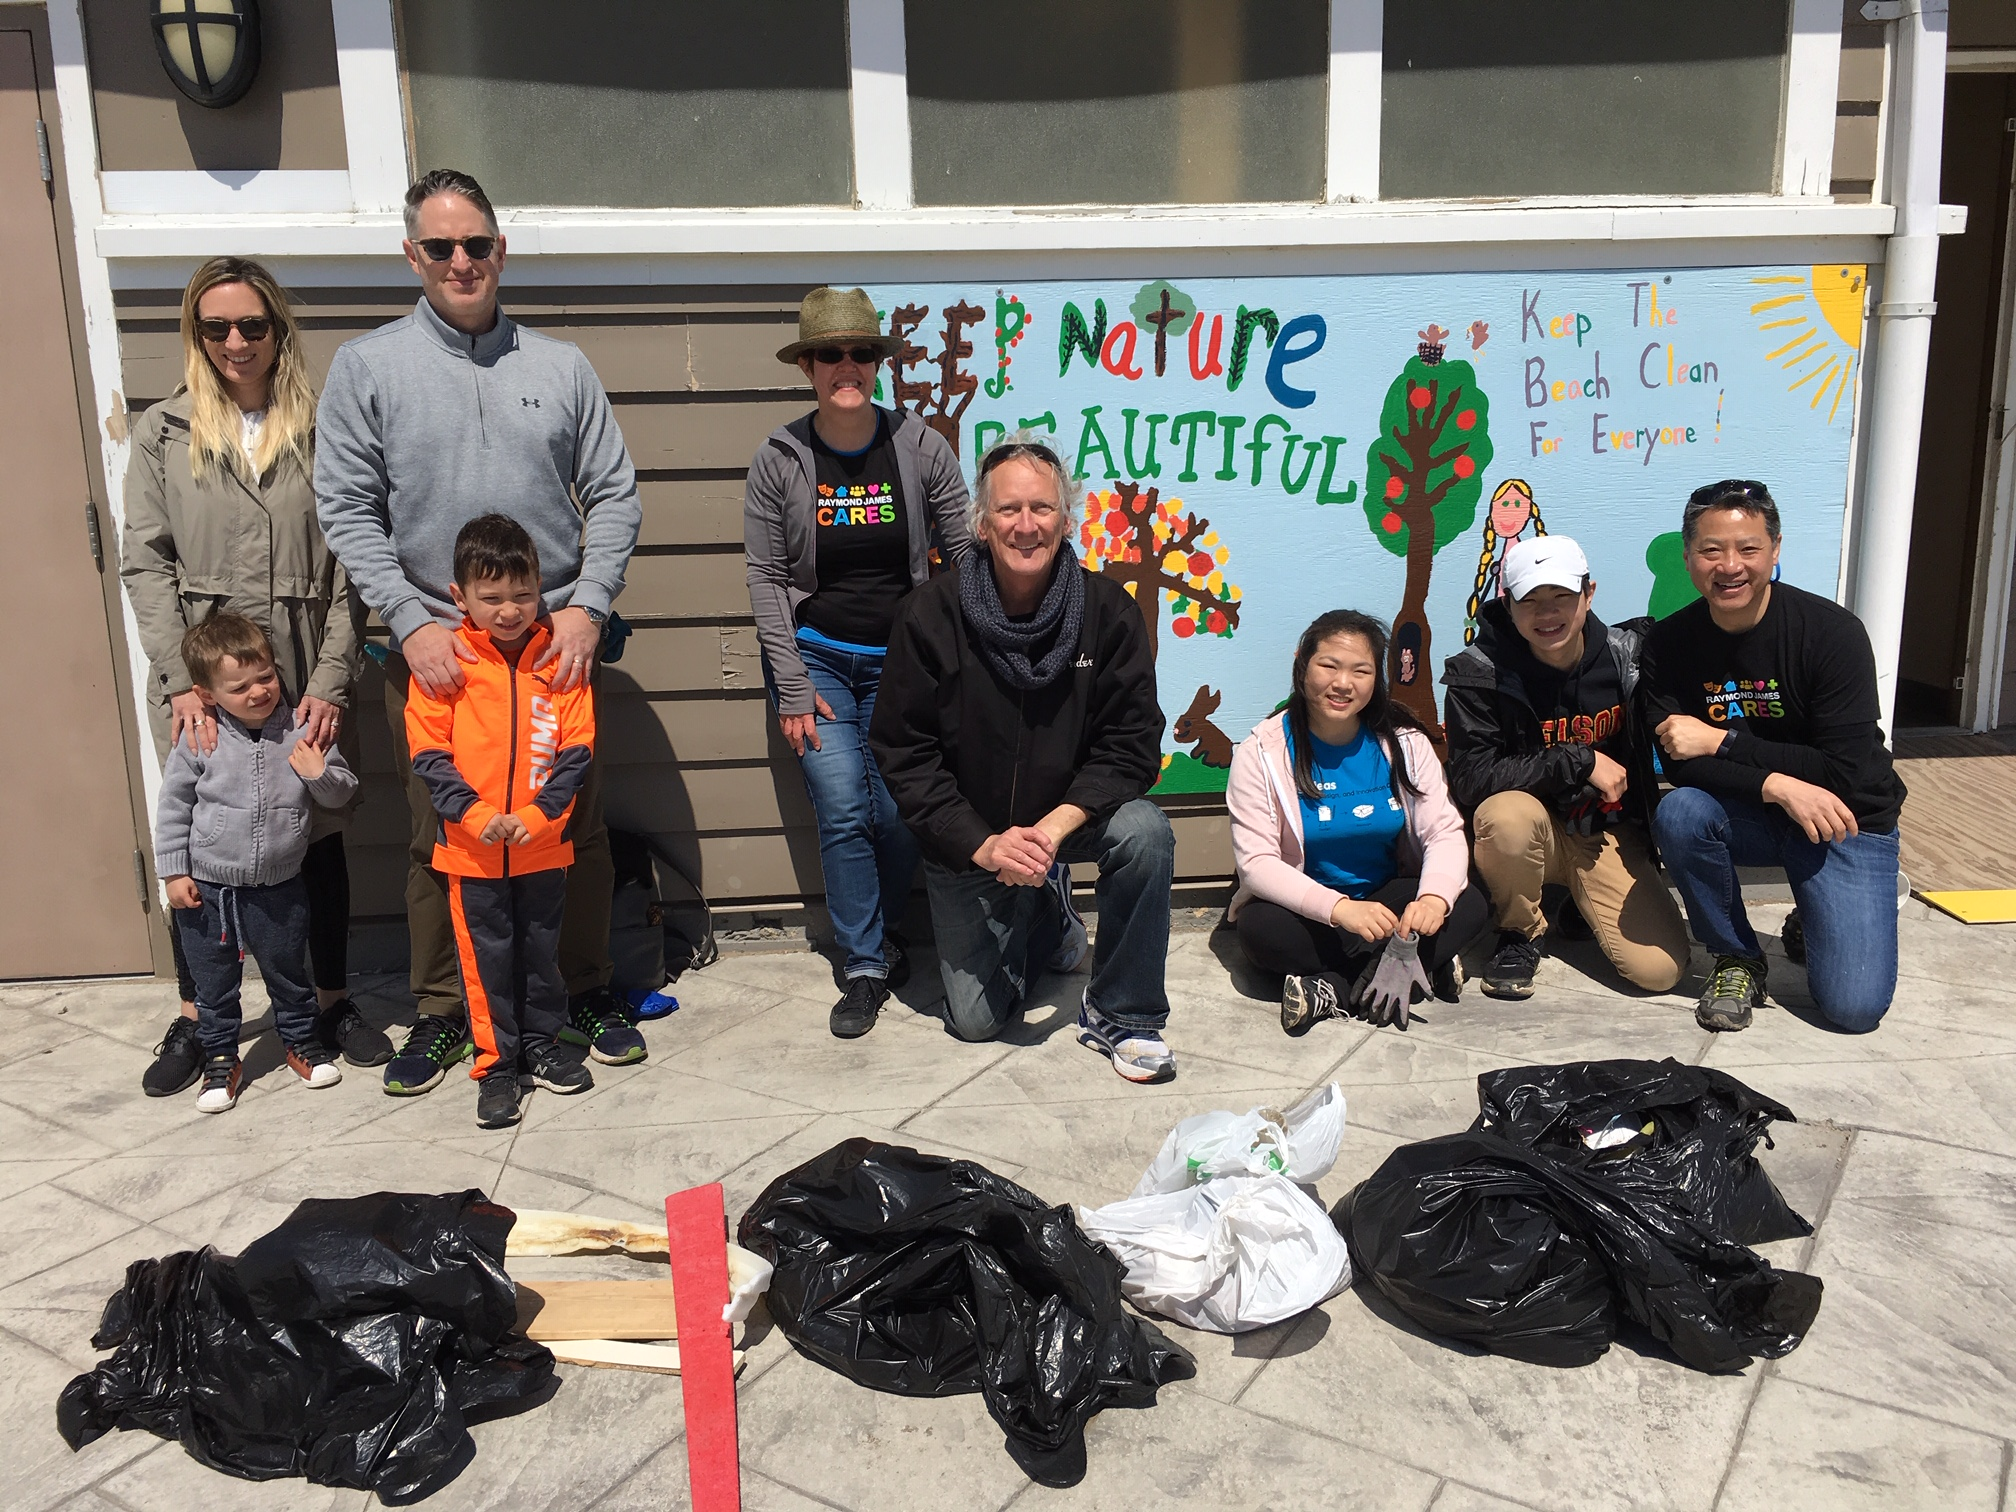 2019 RJ Cares Toronto - Great Canadian Shoreline Cleanup Woodbine Beach: Ryan Lewenza and family; Moira Rosser-Peterson and spouse; Wilson Chen and family